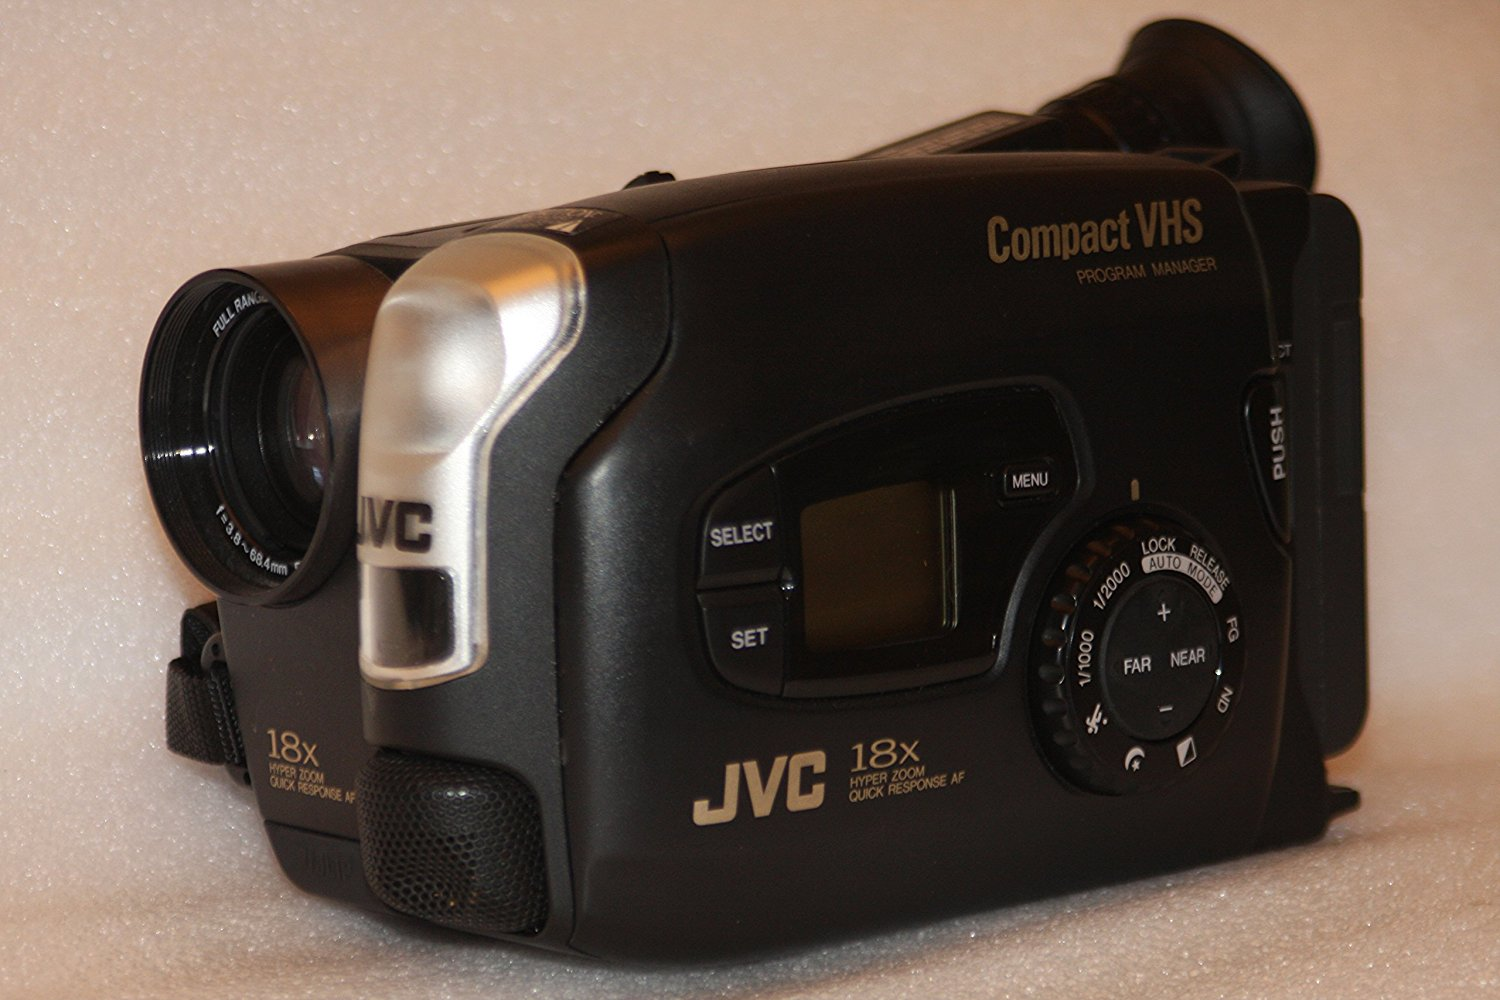 JVC GR-AX720 Compact VHS Camcorder with 18x Hyper Zoom and Color Viewfinder